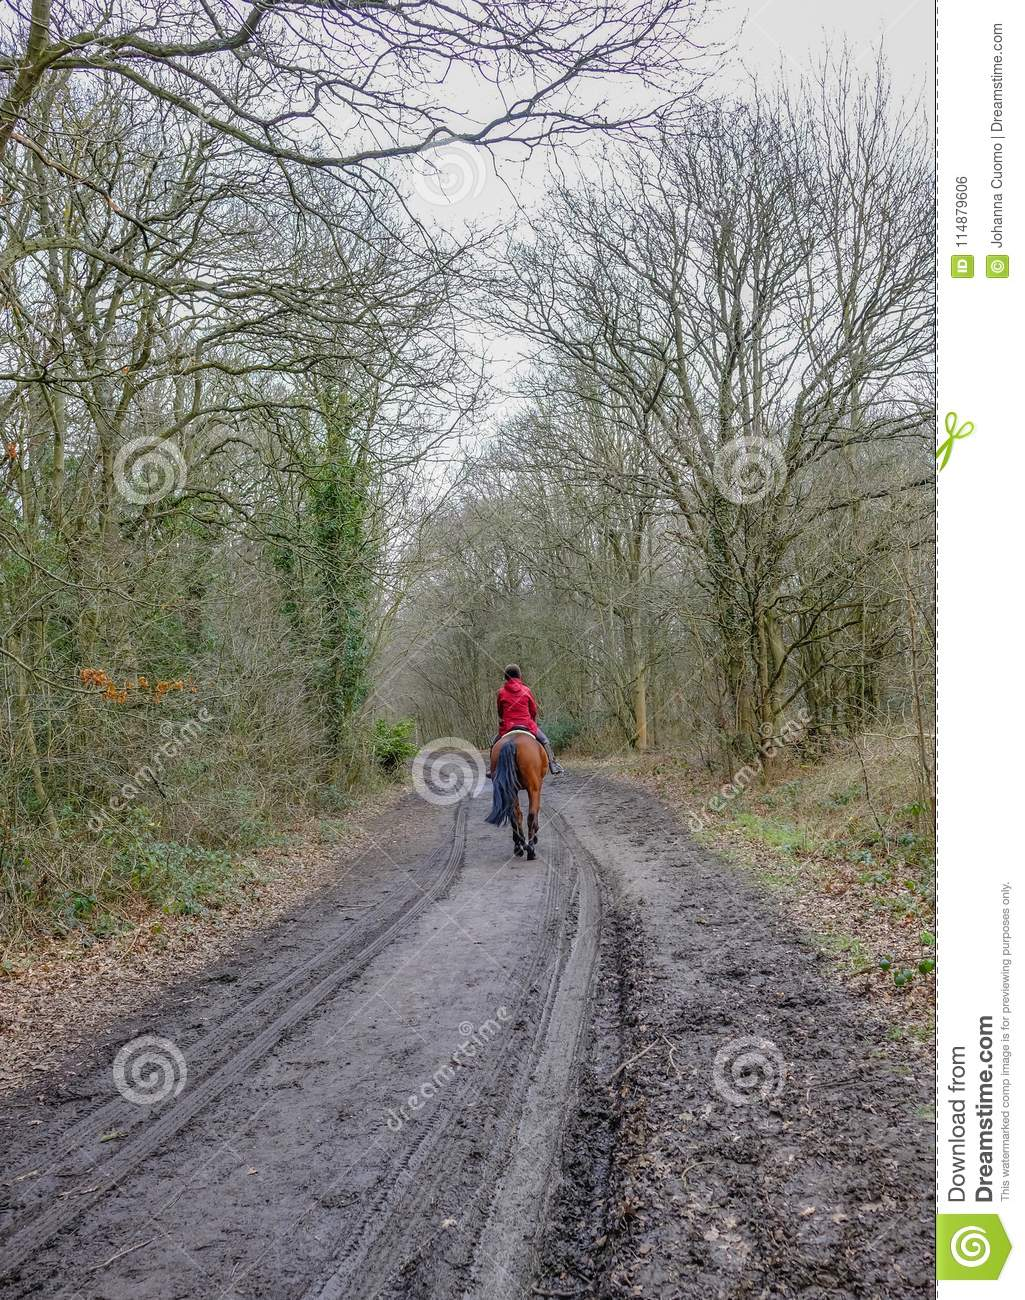 Forest path with rear view of lady in red riding a chestnut horse.